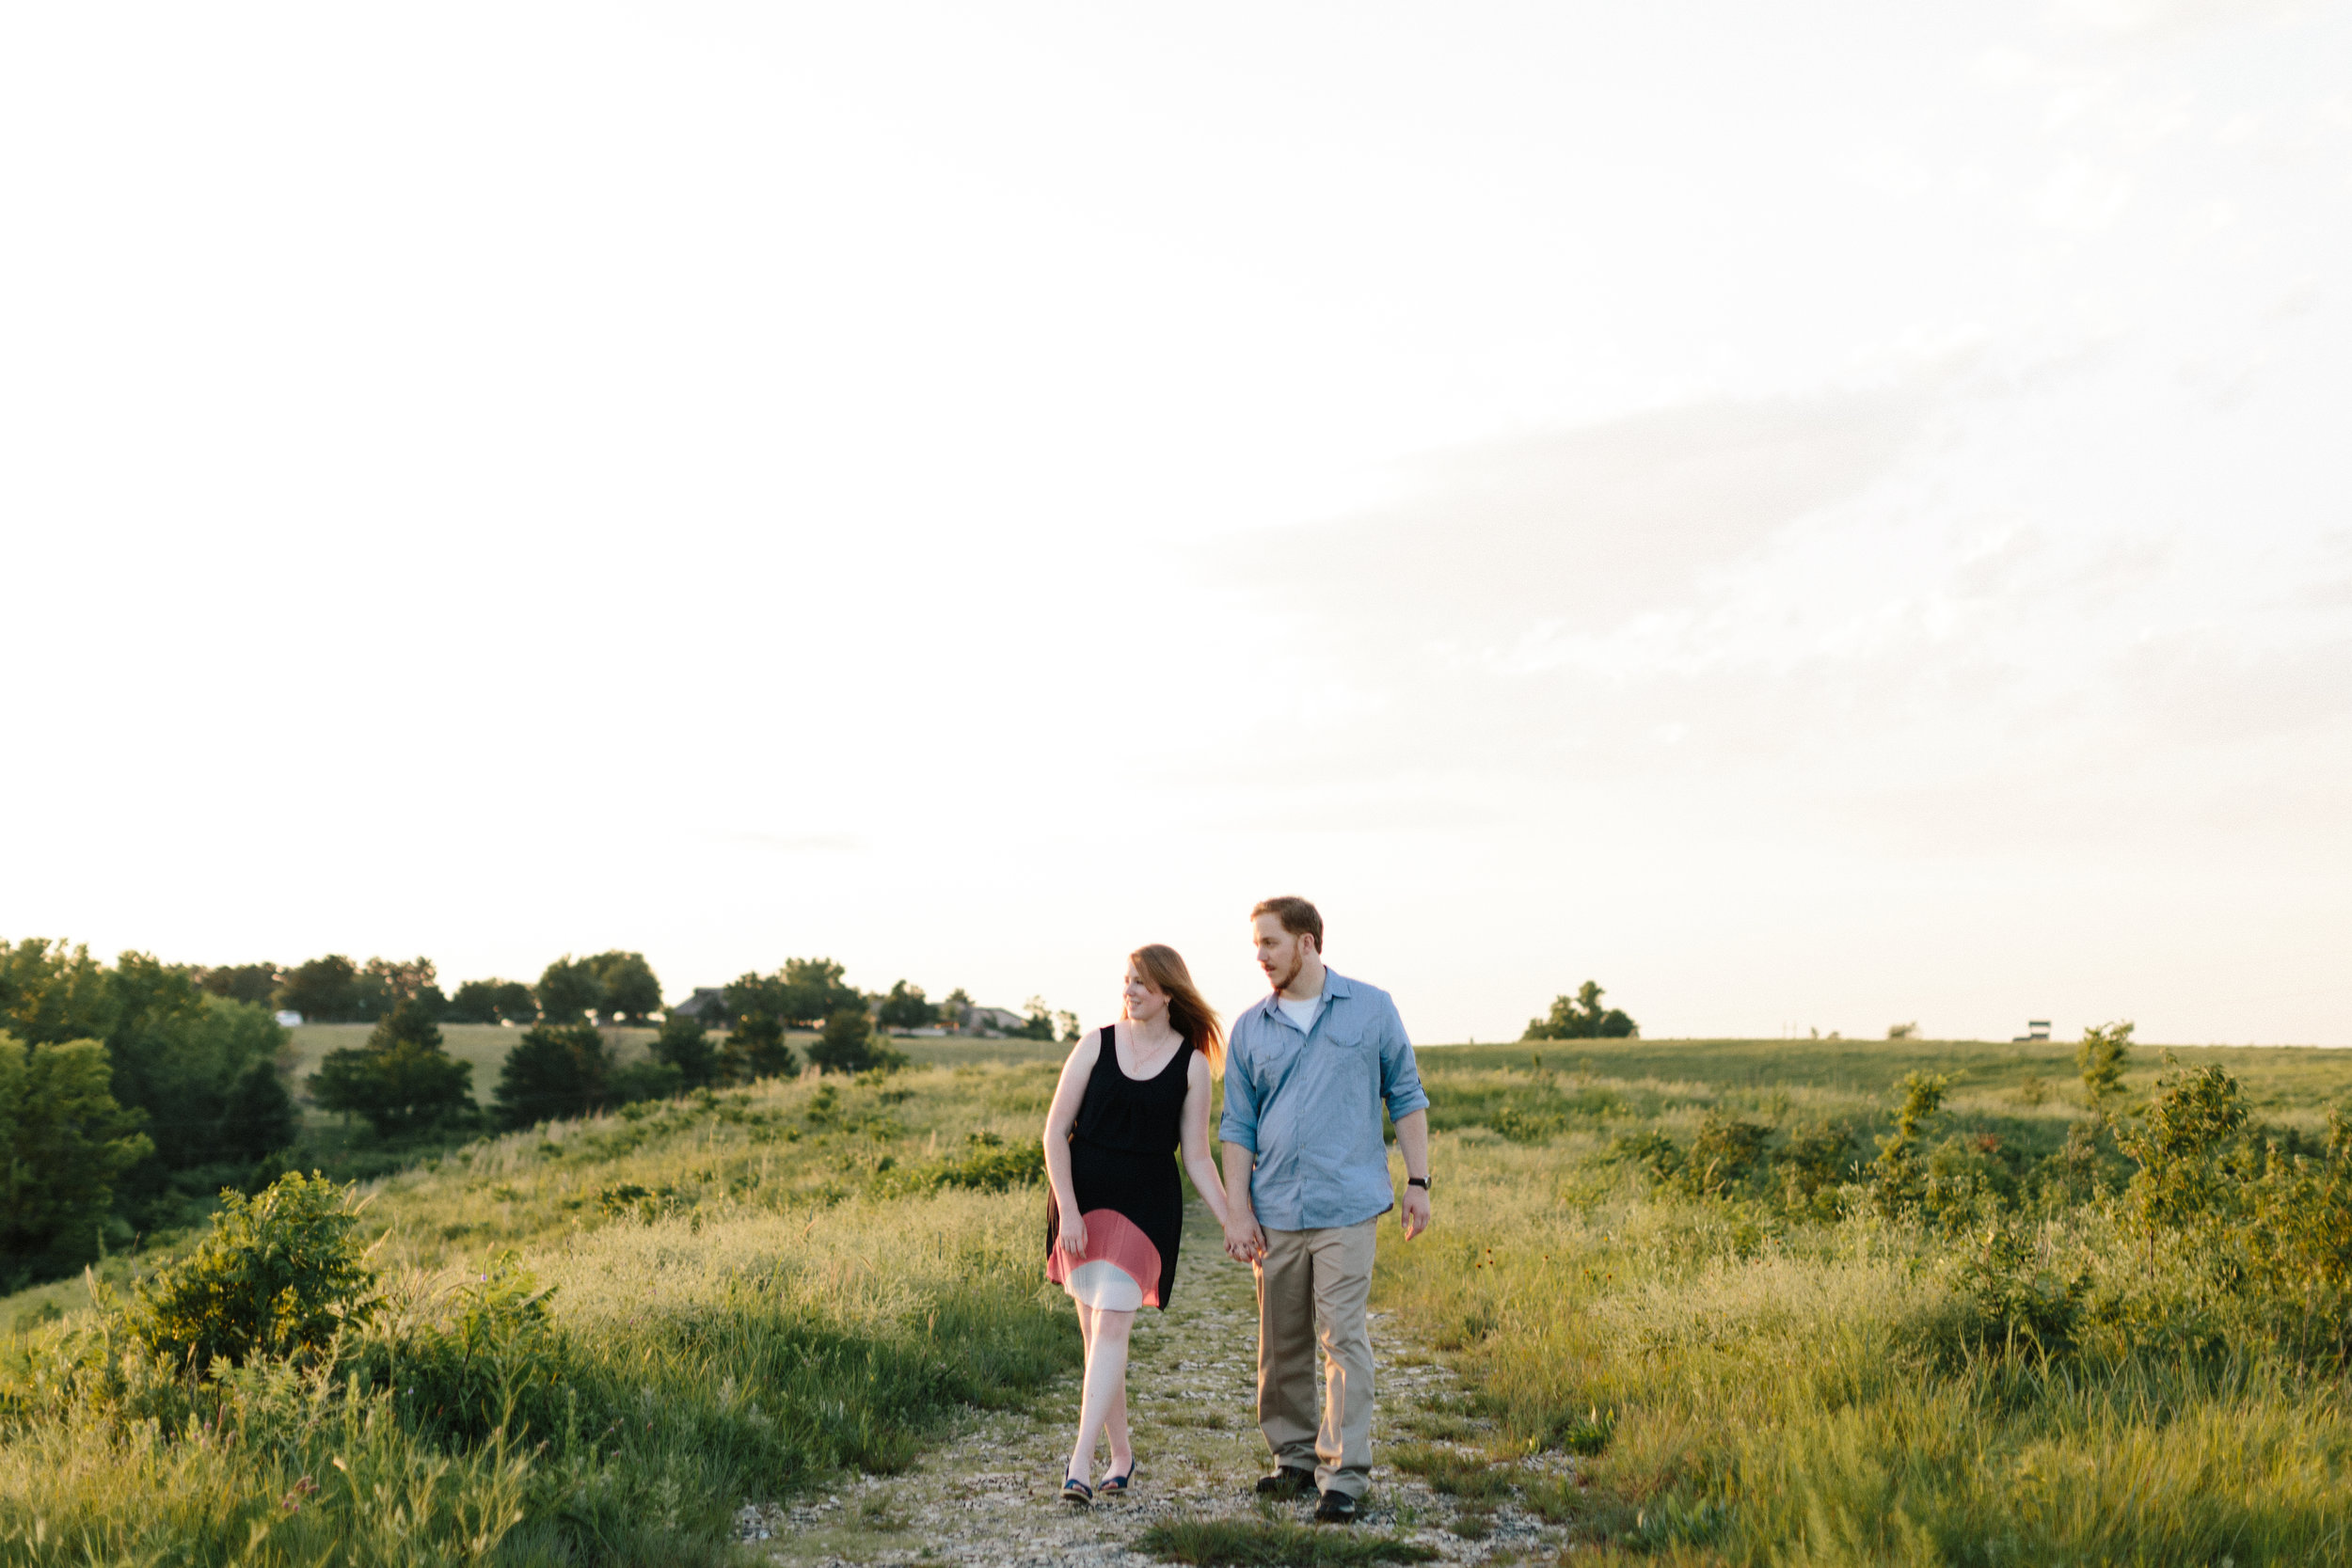 alyssa barletter photography manhattan kansas engagement photos aggieville kaitlynn and jon-14.jpg